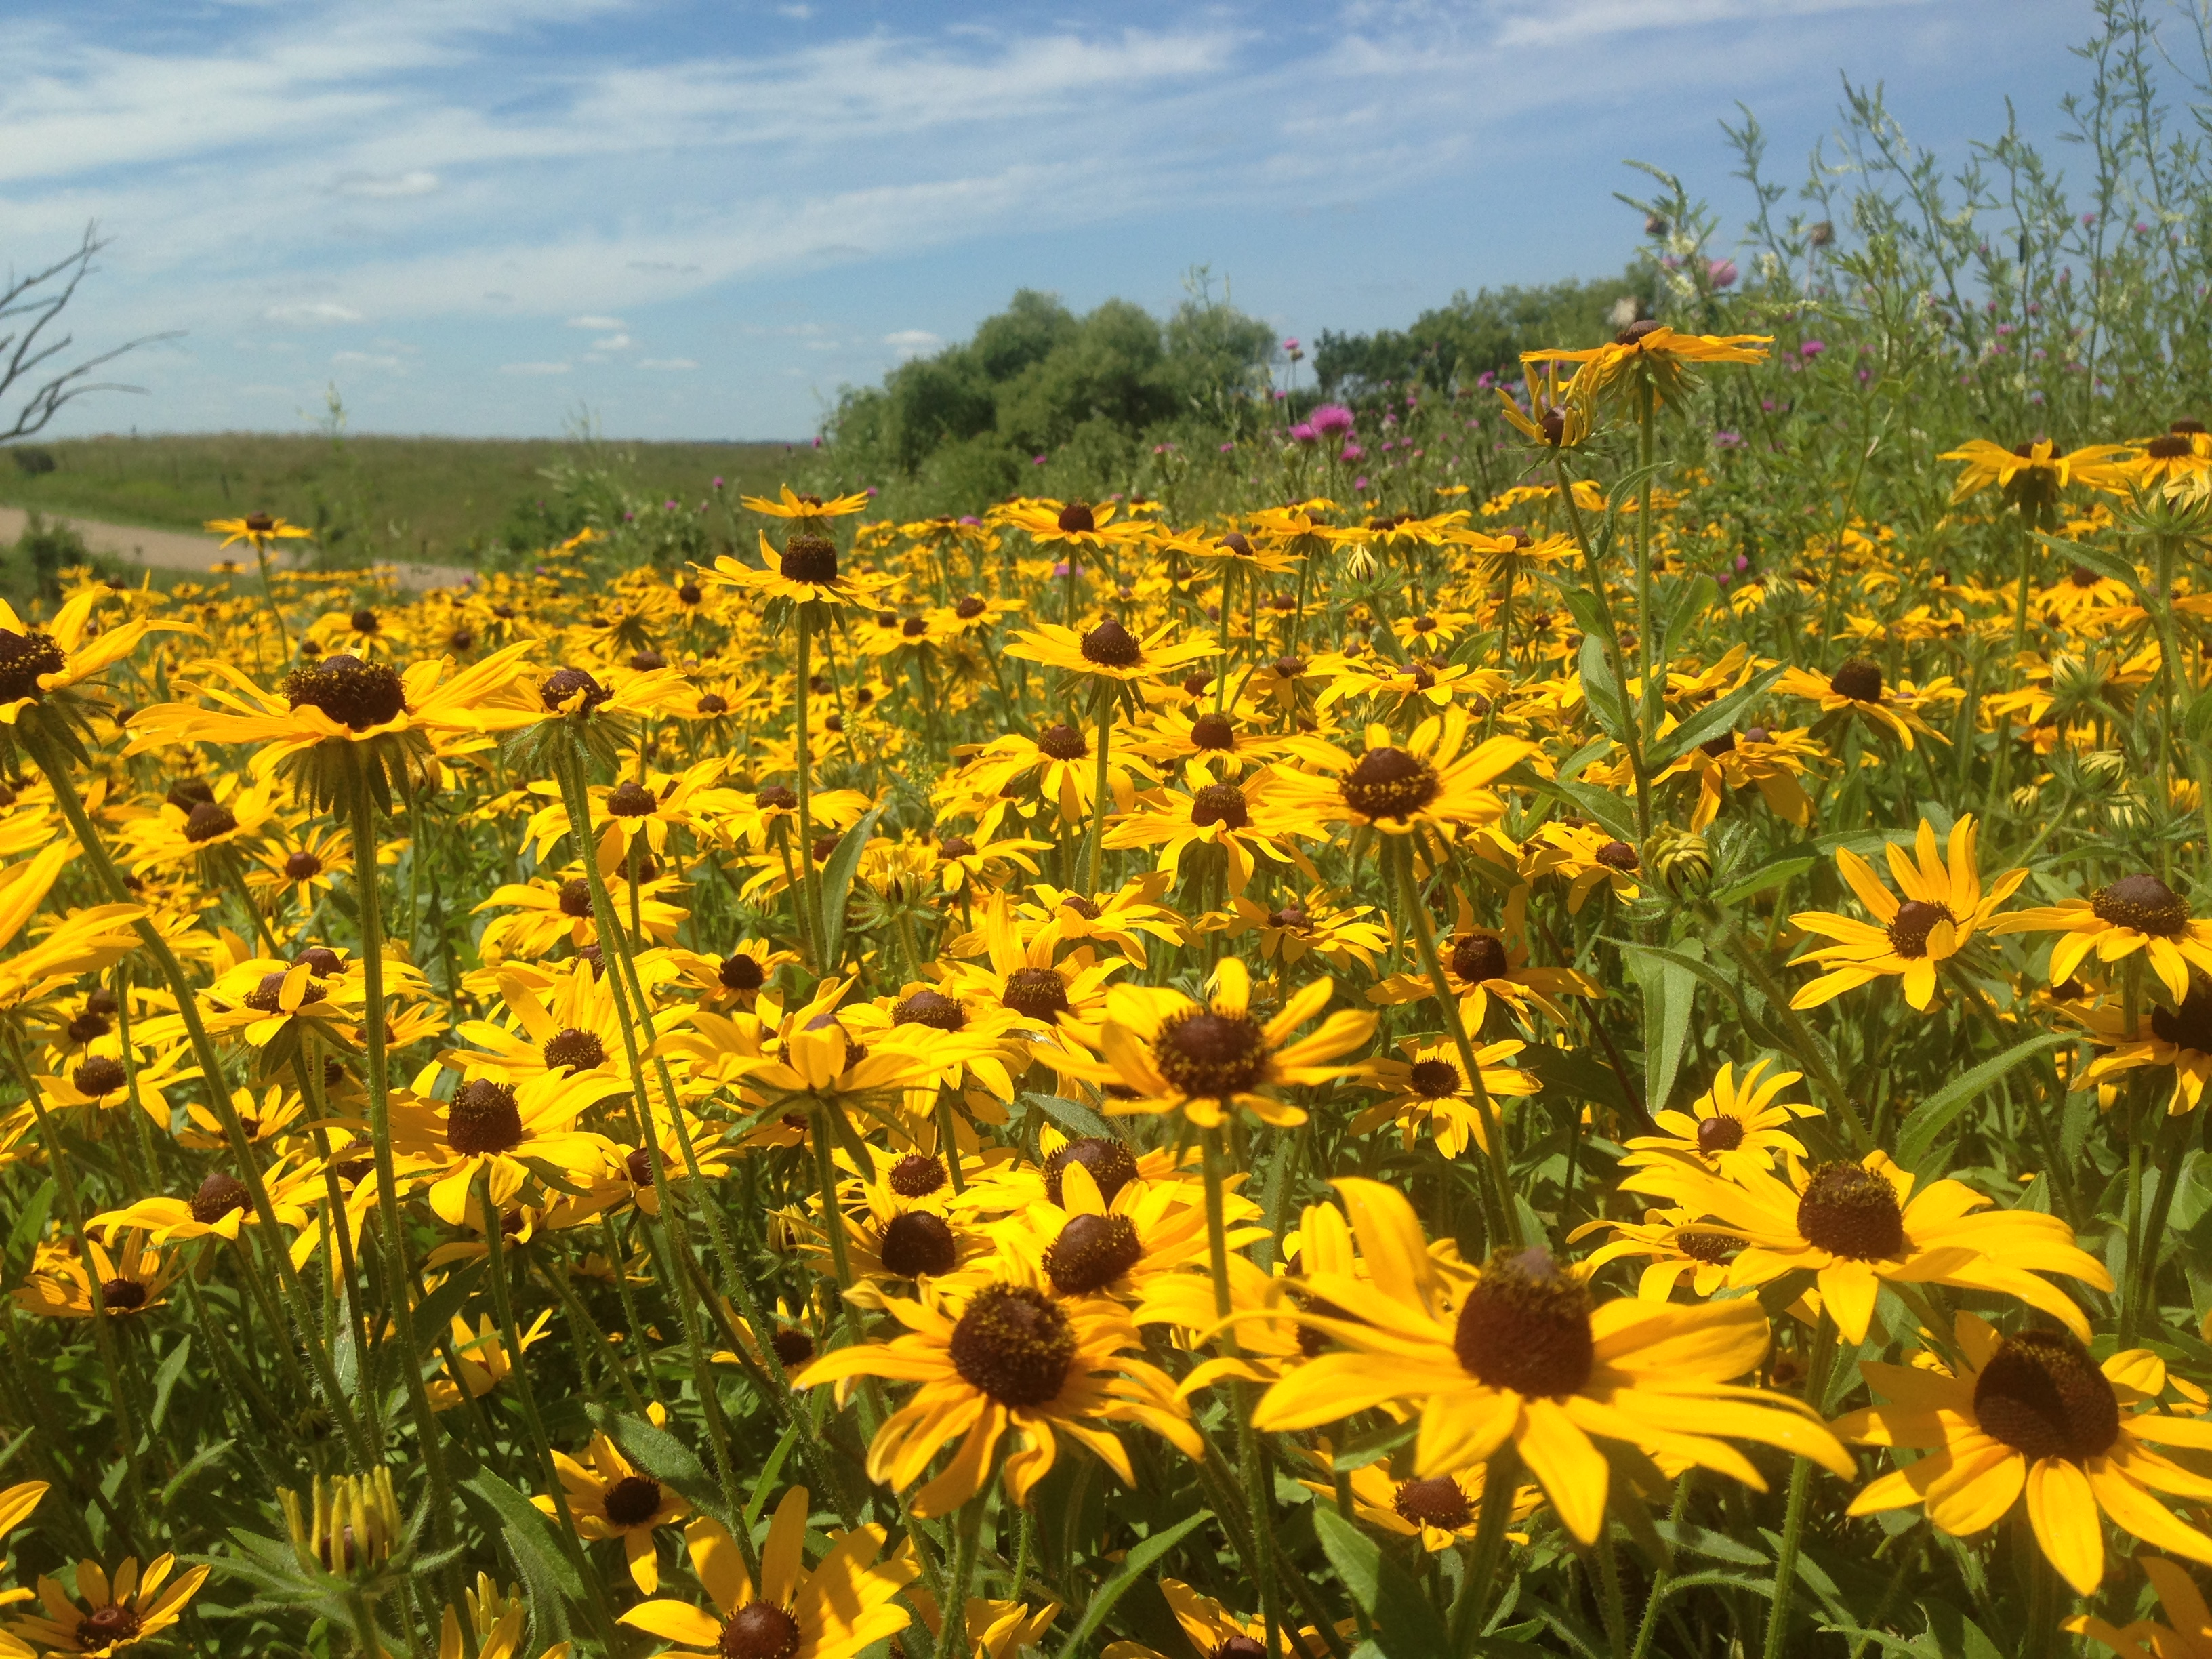 Black Eyed Susans in the wildflowers